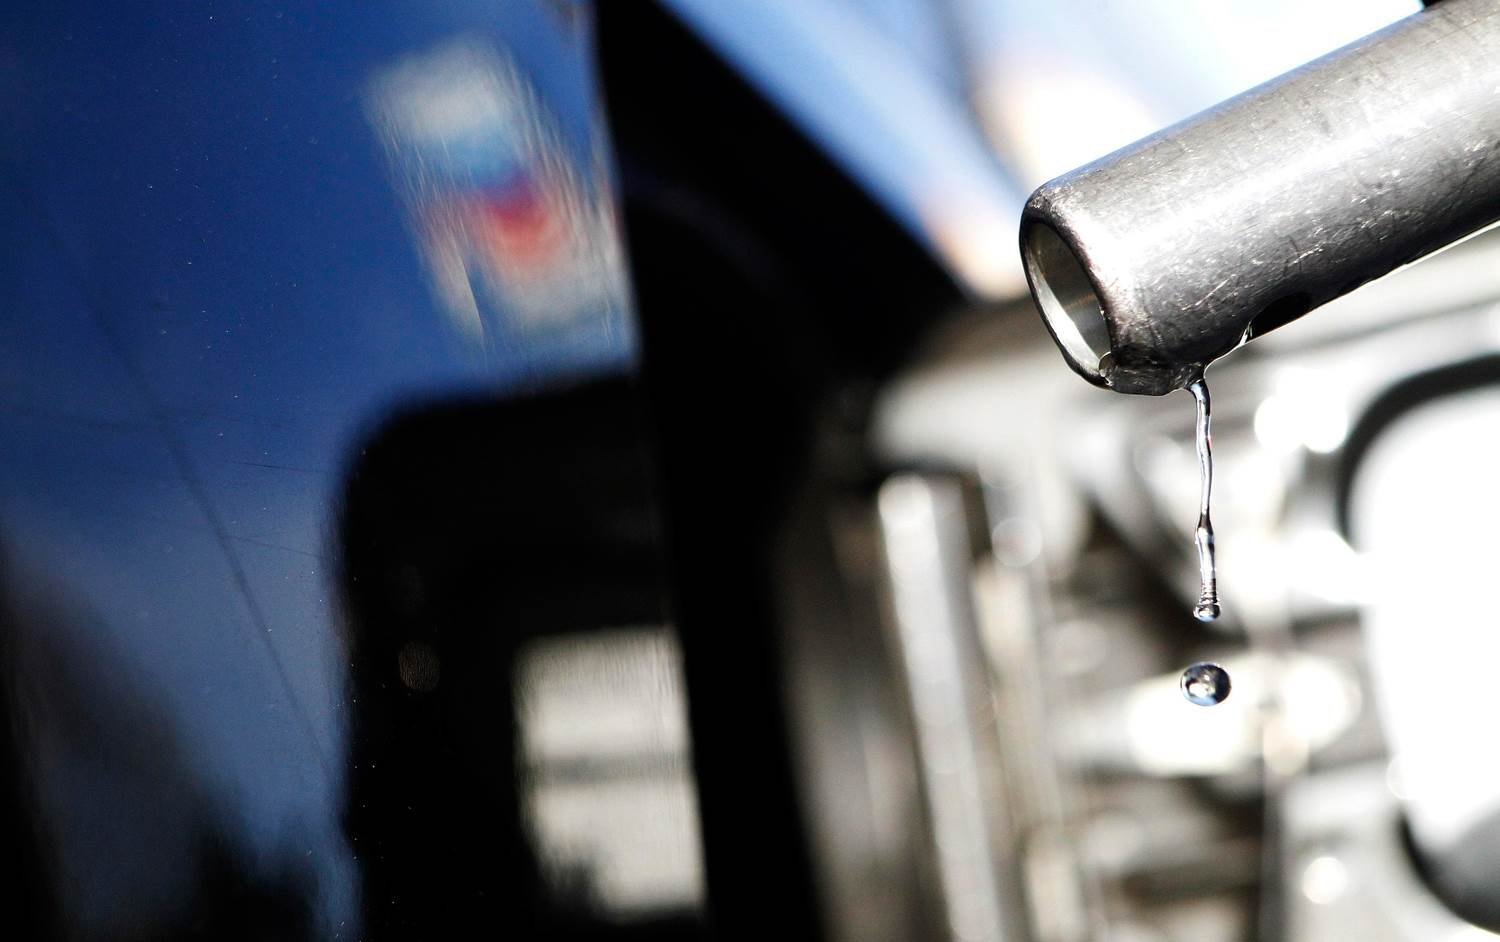 MA gas prices down 3 cents per gallon